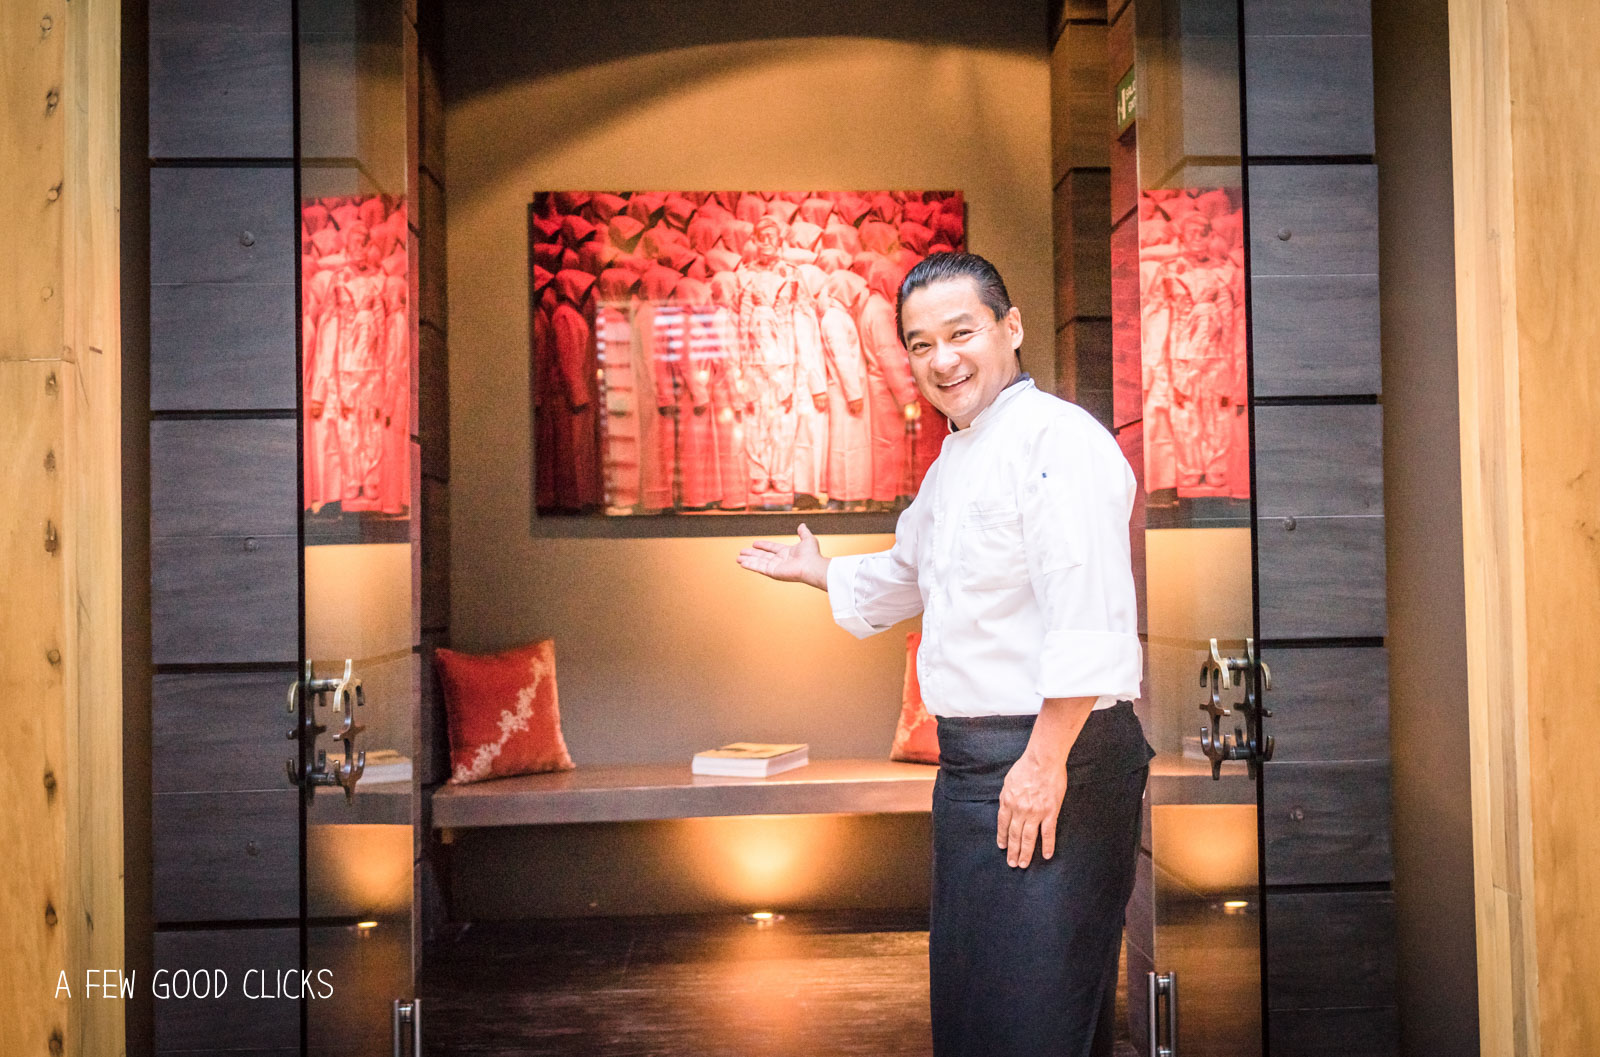 A warm welcome at the entrance of Asian fusion restaurant - Indochine